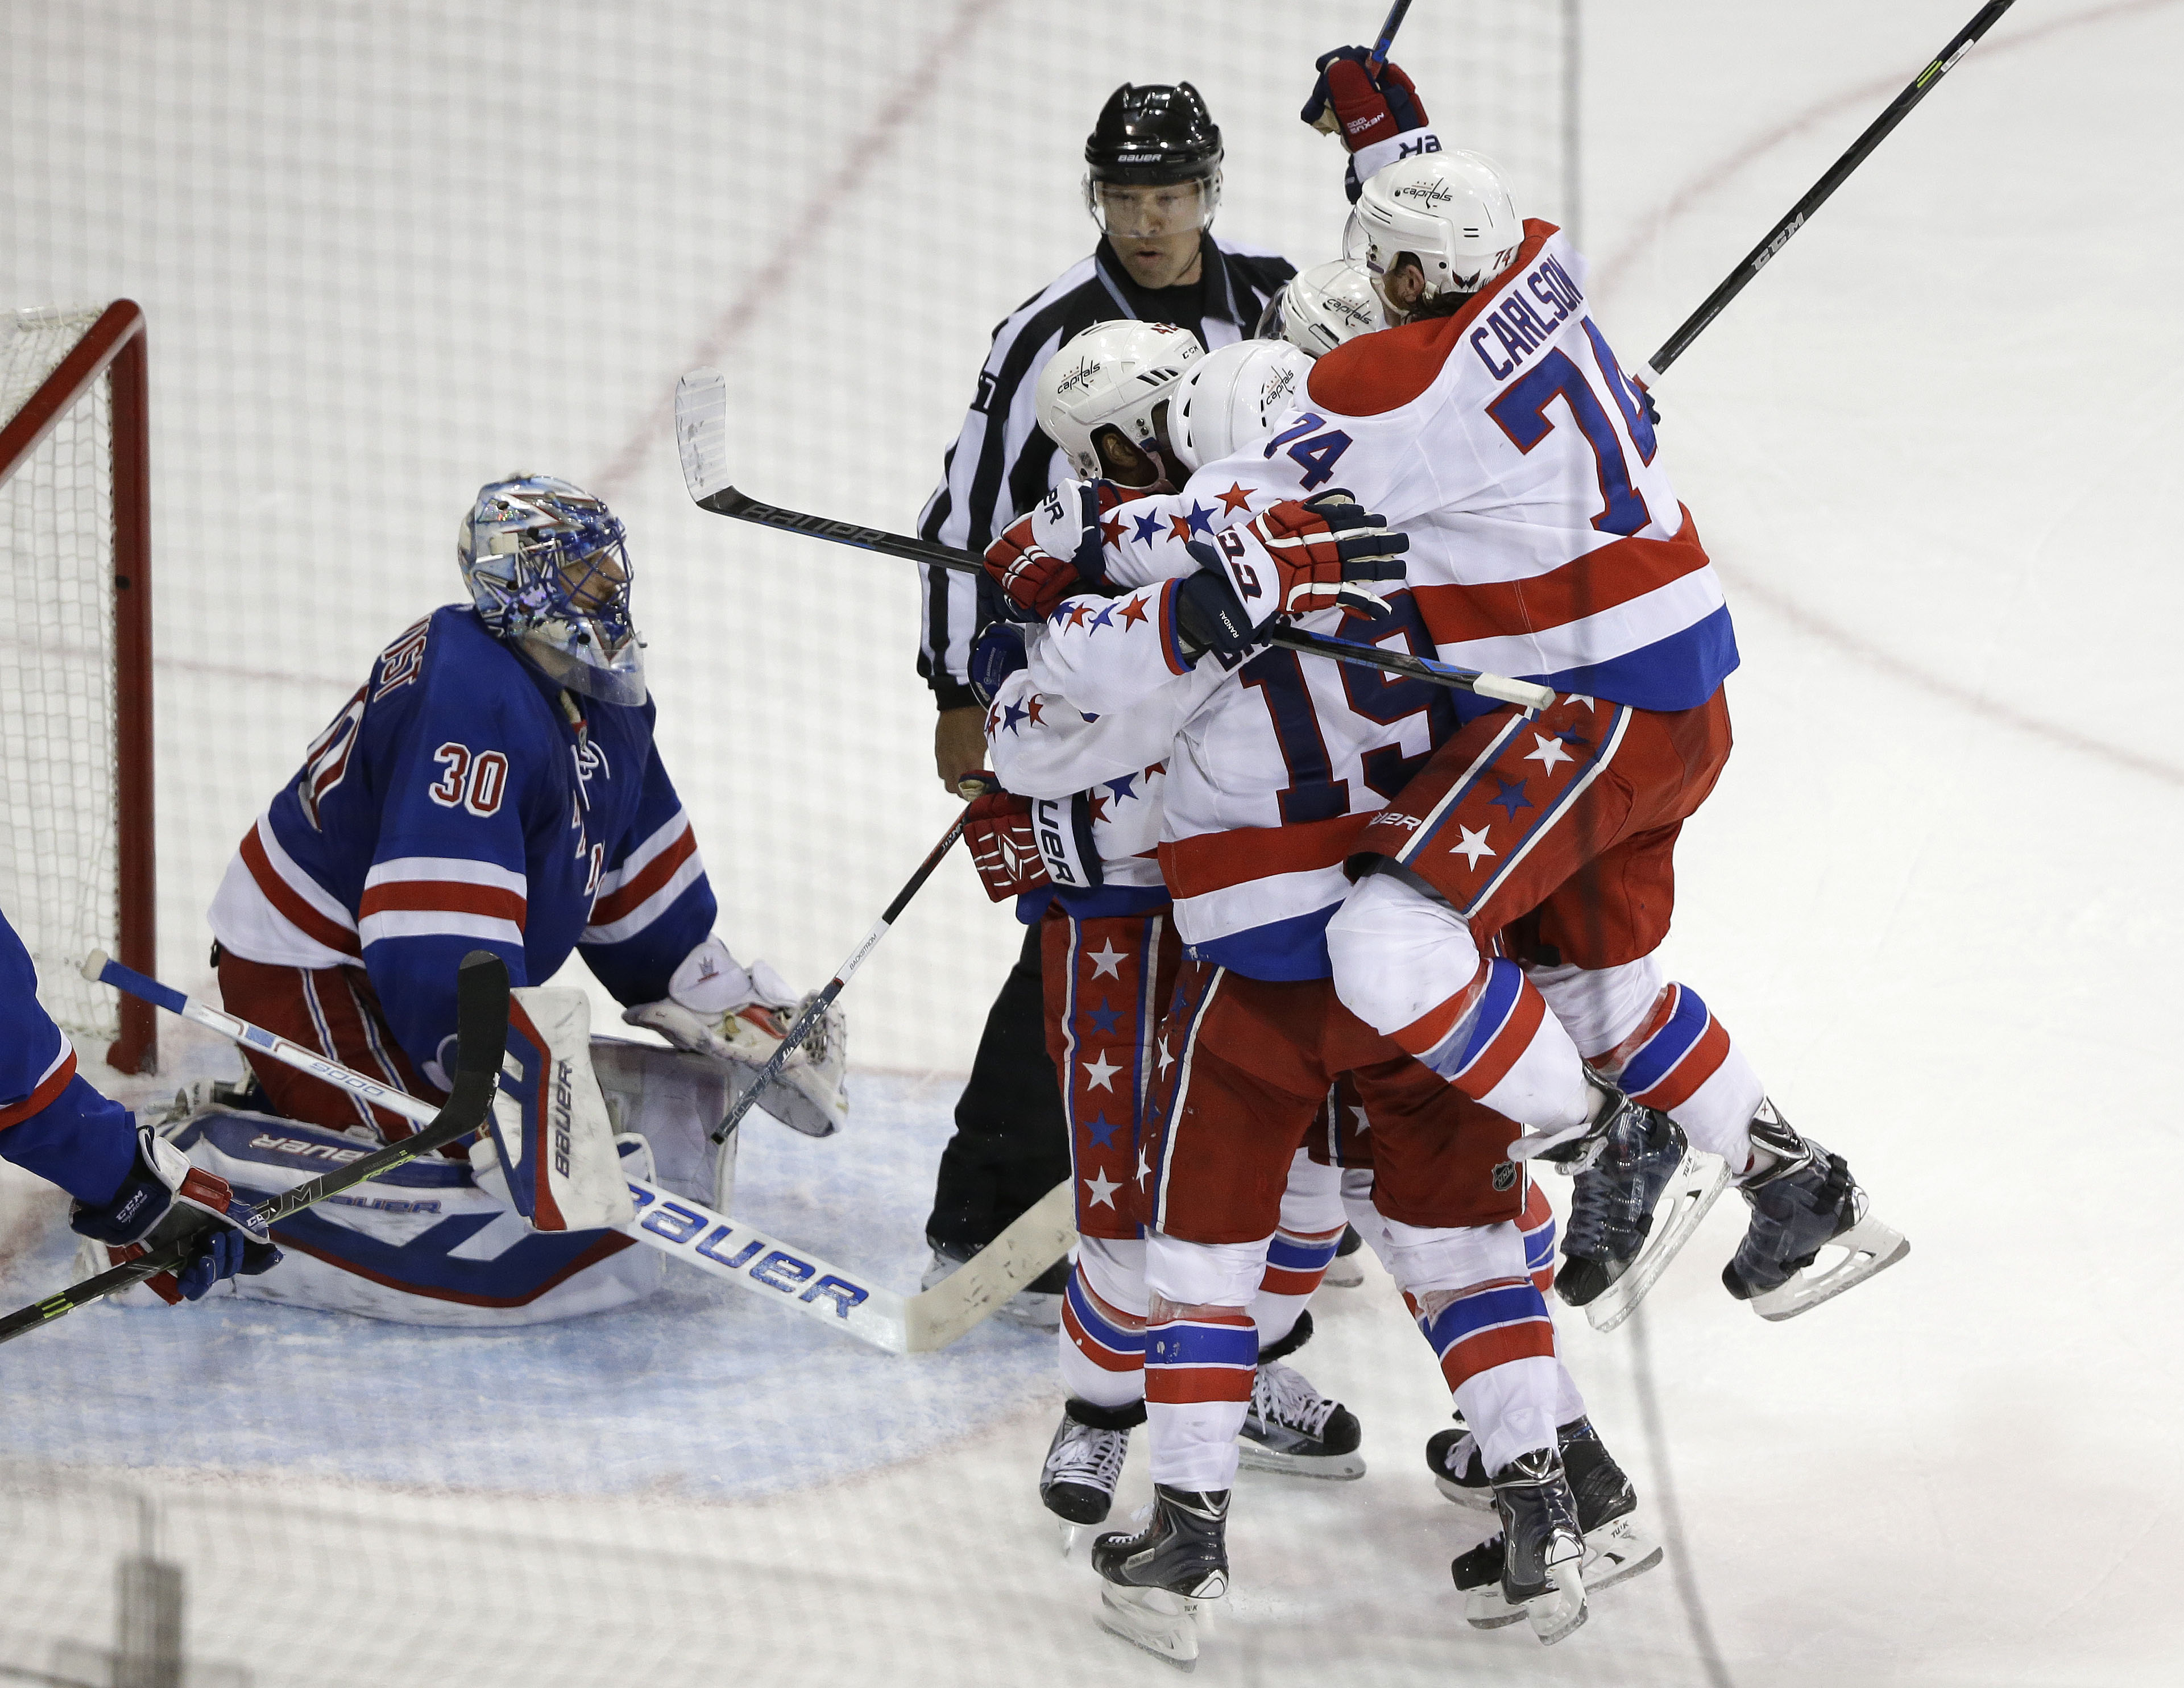 RETRANSMISSION TO CORRECT GOAL BY JOEL WARD - The Washington Capitals celebrate a goal by right wing Joel Ward as New York Rangers goalie Henrik Lundqvist (30) looks on during the third period of Game 1 in the second round of the NHL Stanley Cup hockey pl